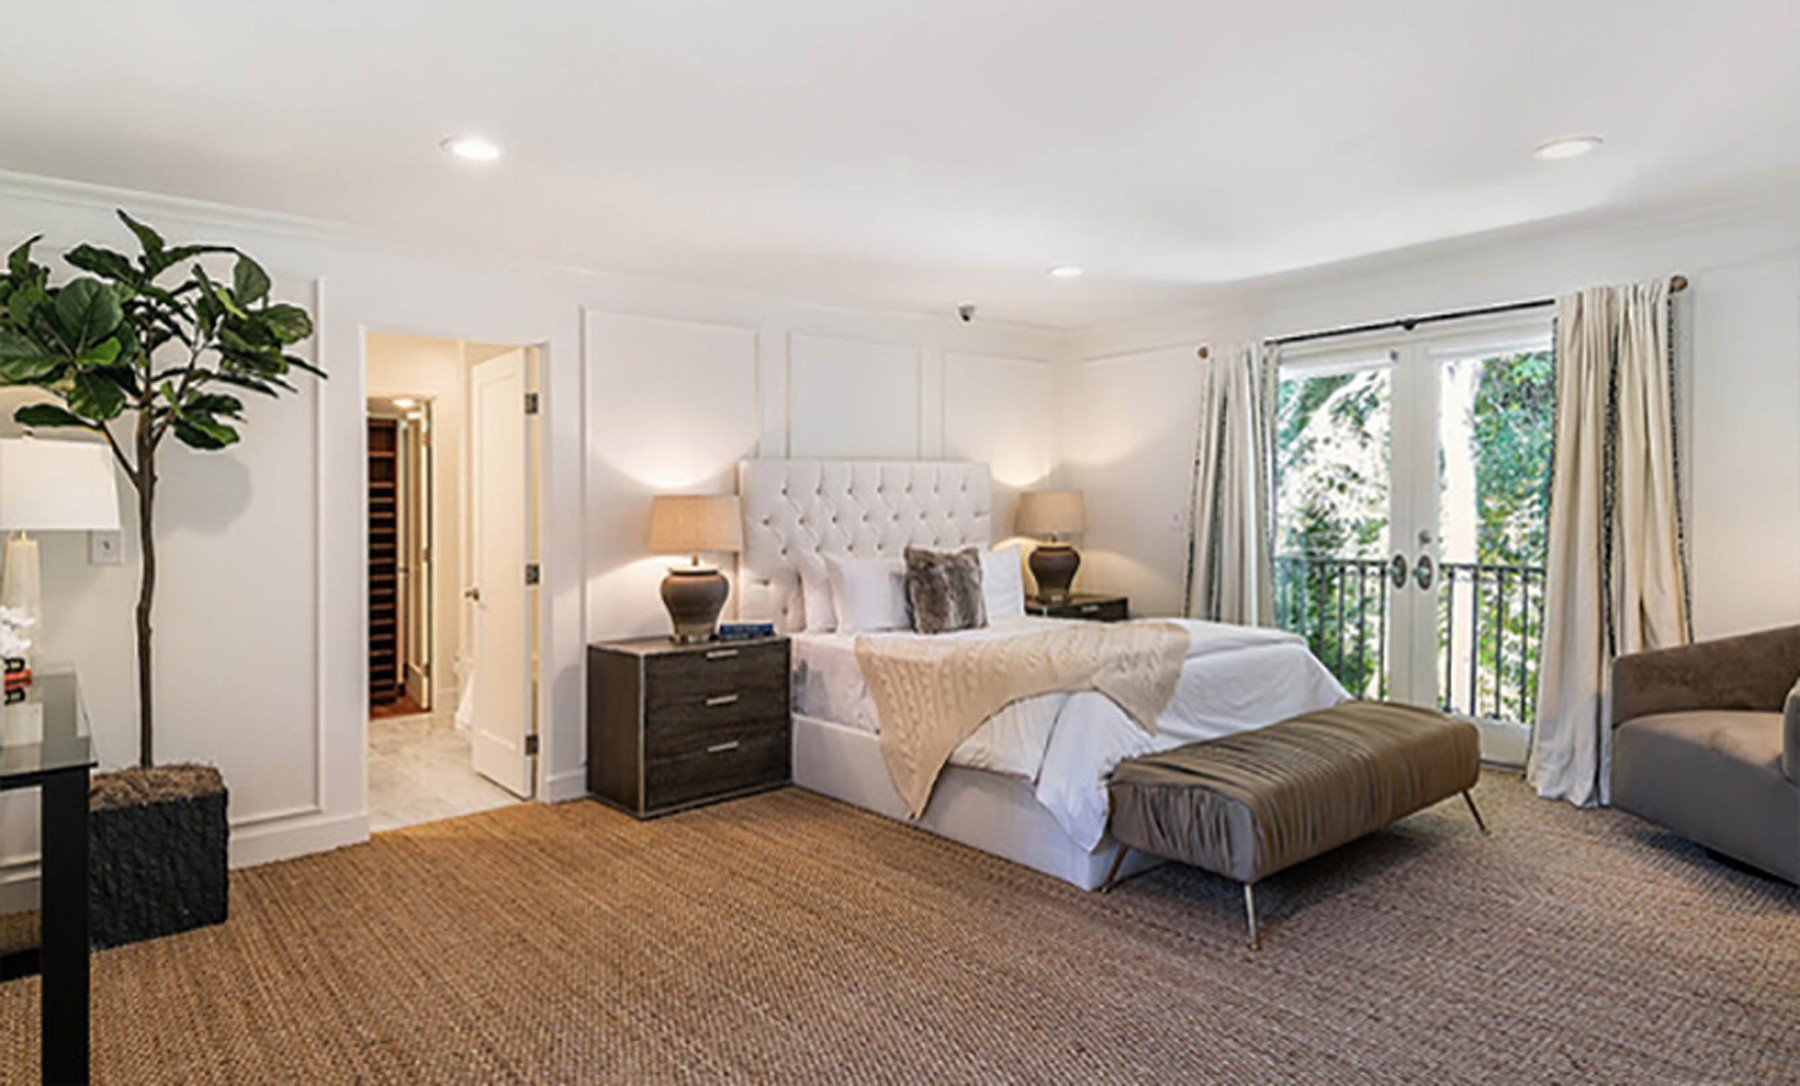 2-4-2019  Jessica Alba is looking to sell her home in Beverly Hills, Los Angeles for .195 million having recently purchased a larger house. With 5,300 square feet of living space, there are 5 bedrooms and 7 bathrooms. Built in the mid-1970s, the house sits on almost half of an acre of land behind large security gates.  Pictured: Jessica Alba's house, Image: 423690048, License: Rights-managed, Restrictions: , Model Release: no, Credit line: Profimedia, Planet